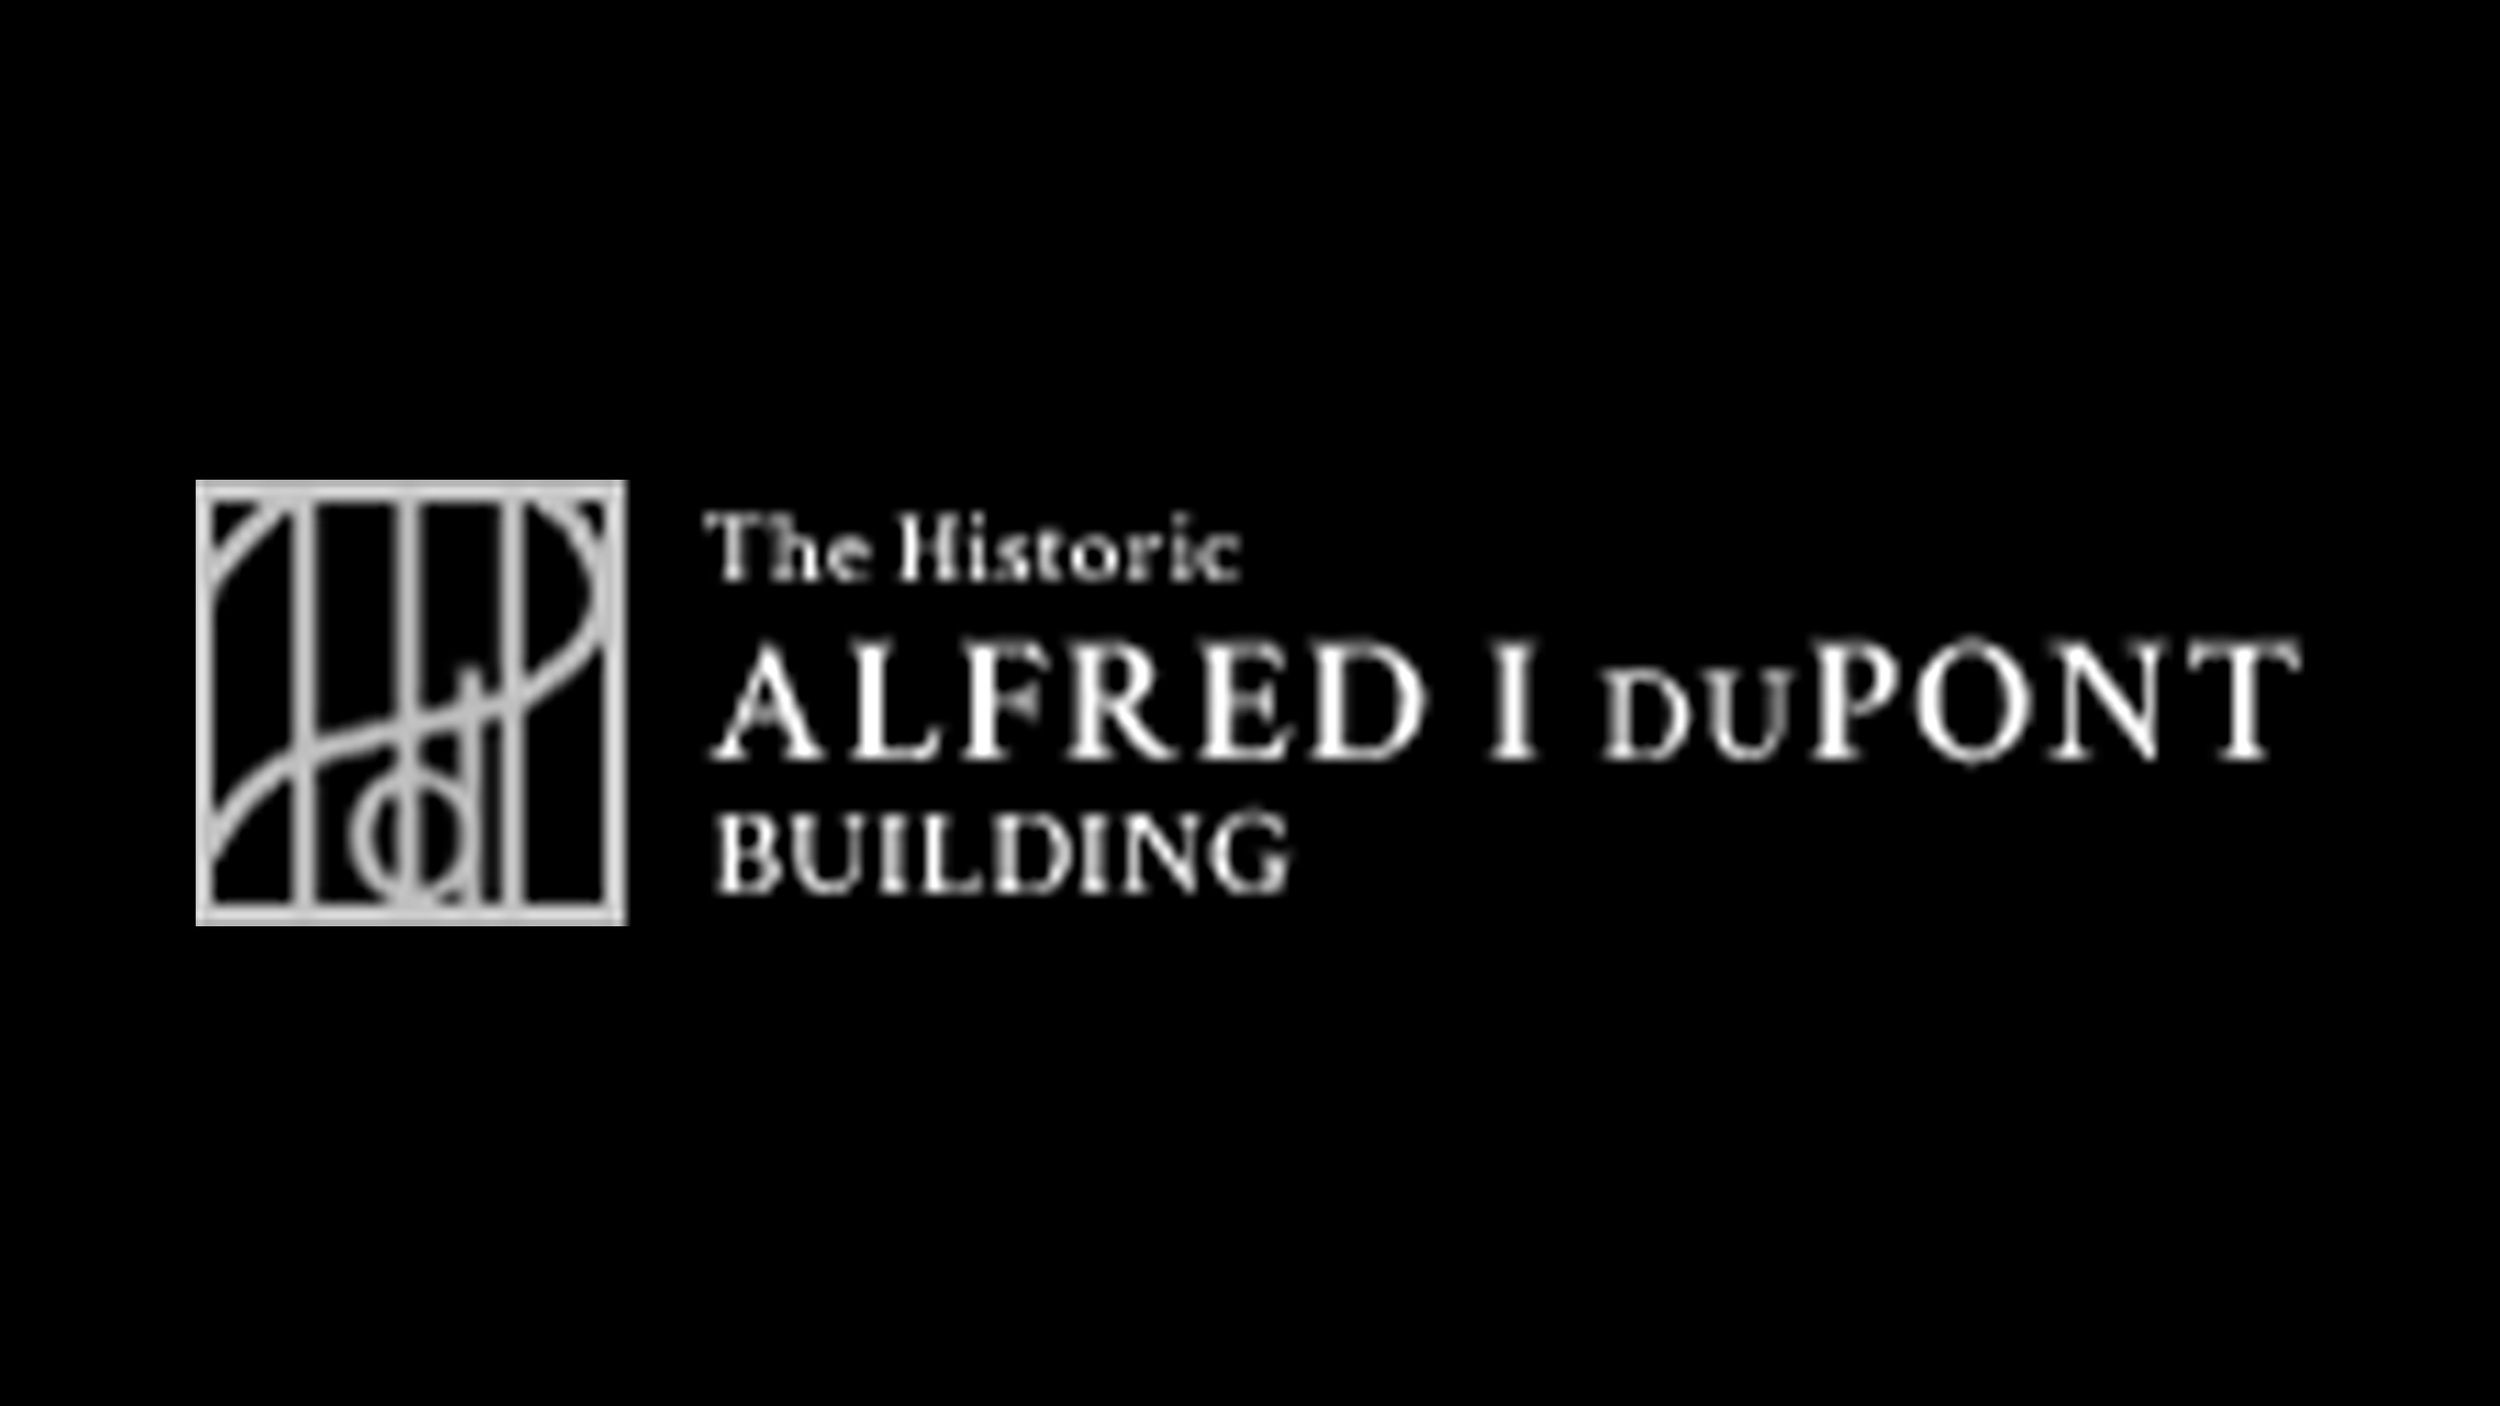 The Historic Alfred DuPont Building